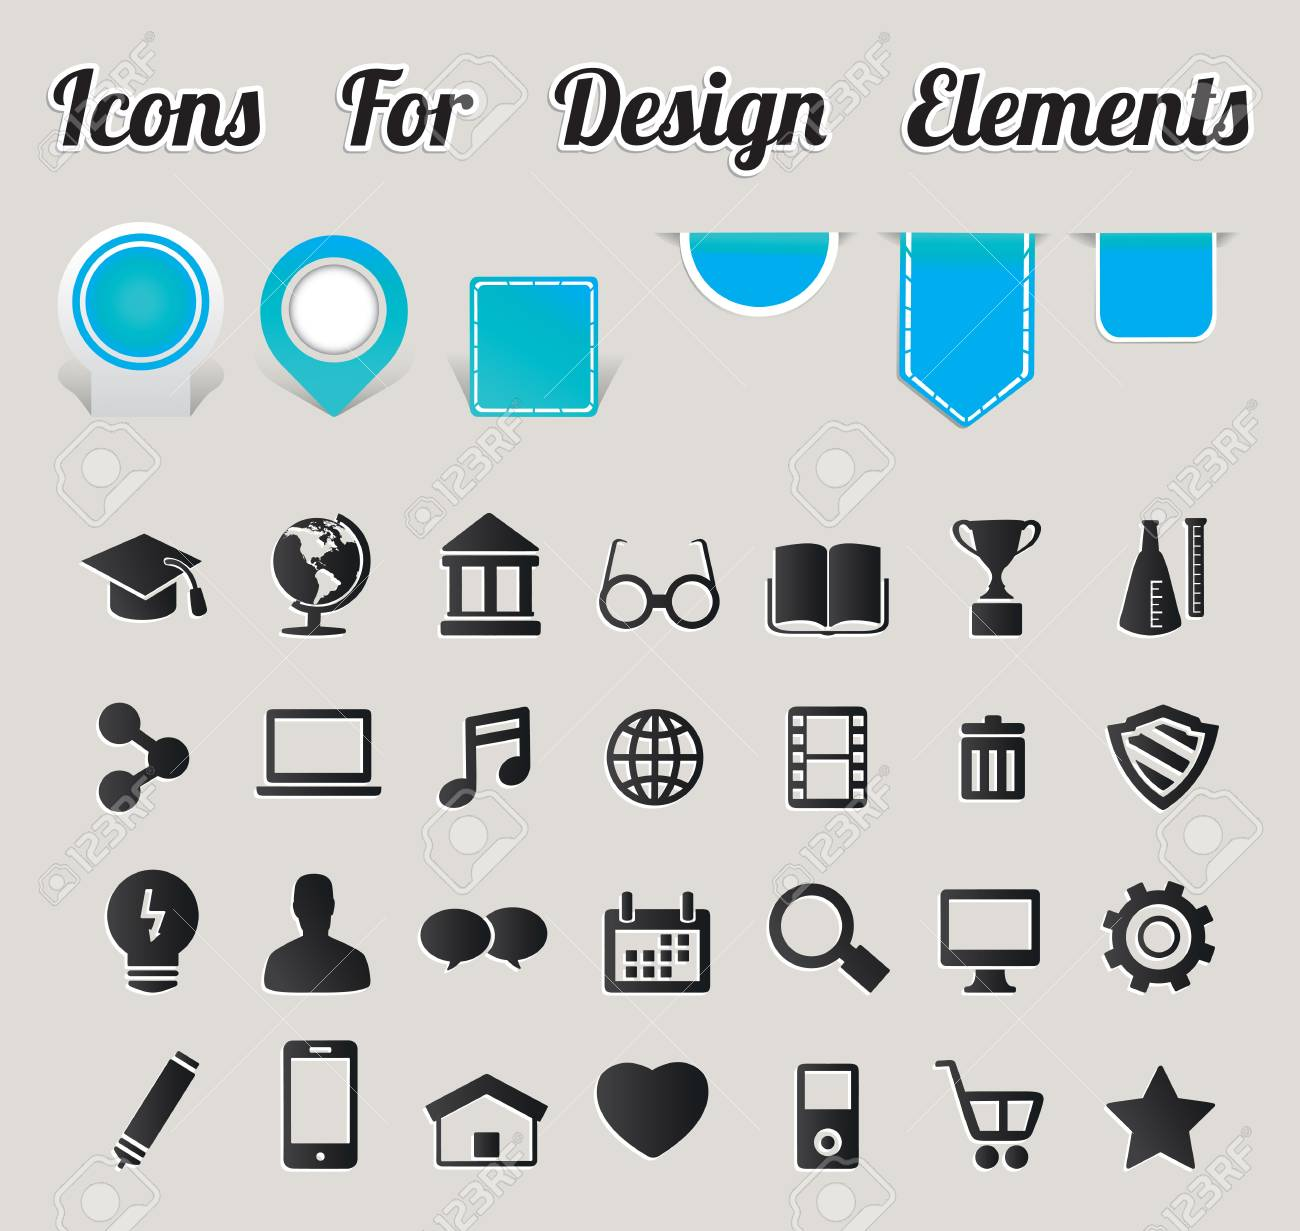 Icons For Design Elements - vector icons Stock Vector - 16632960